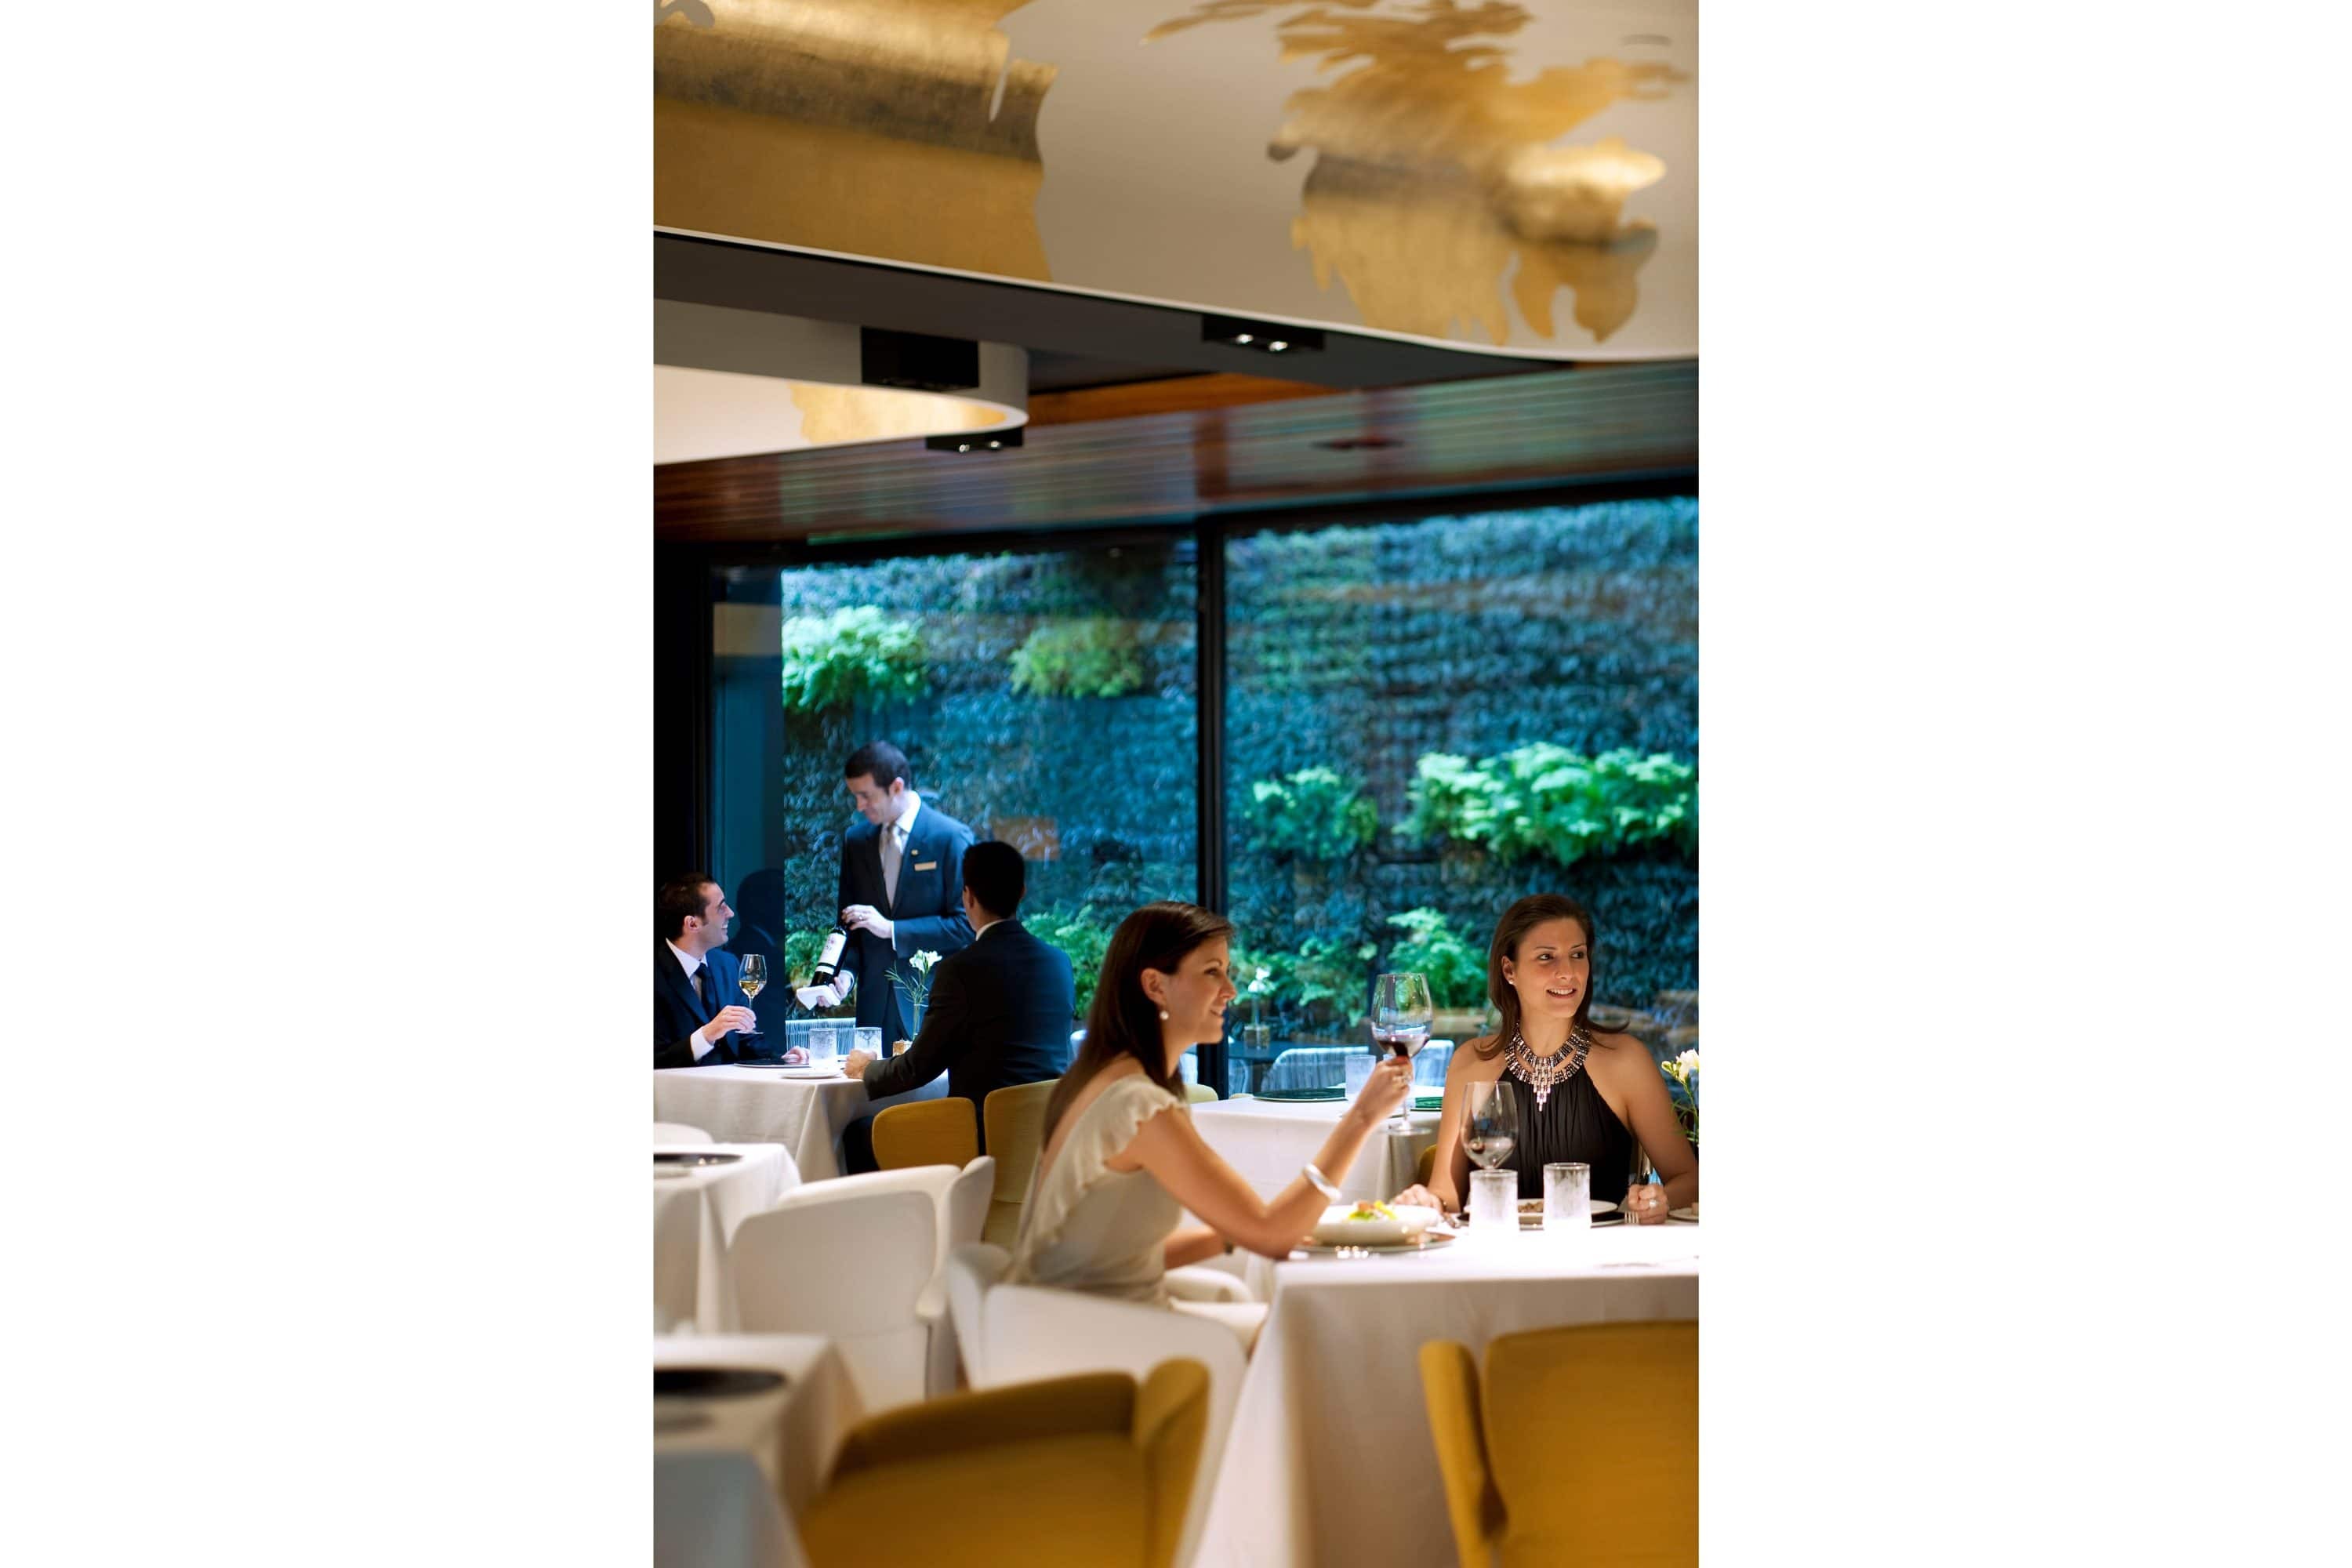 People dining at Moments restaurant, Barcelona